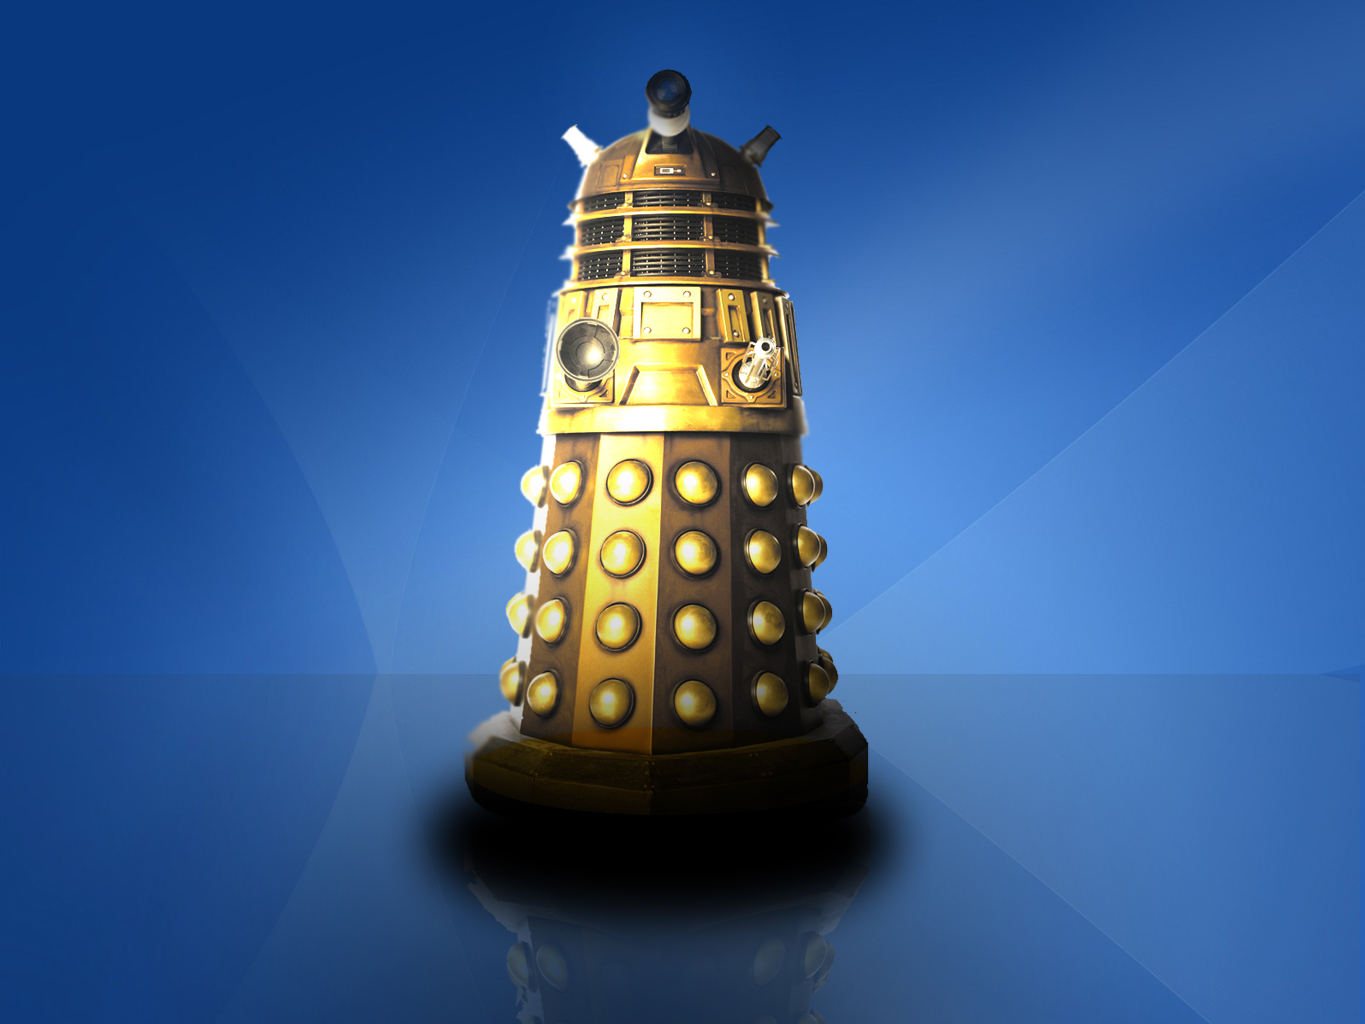 doctor who images dalek dual screen hd wallpaper and